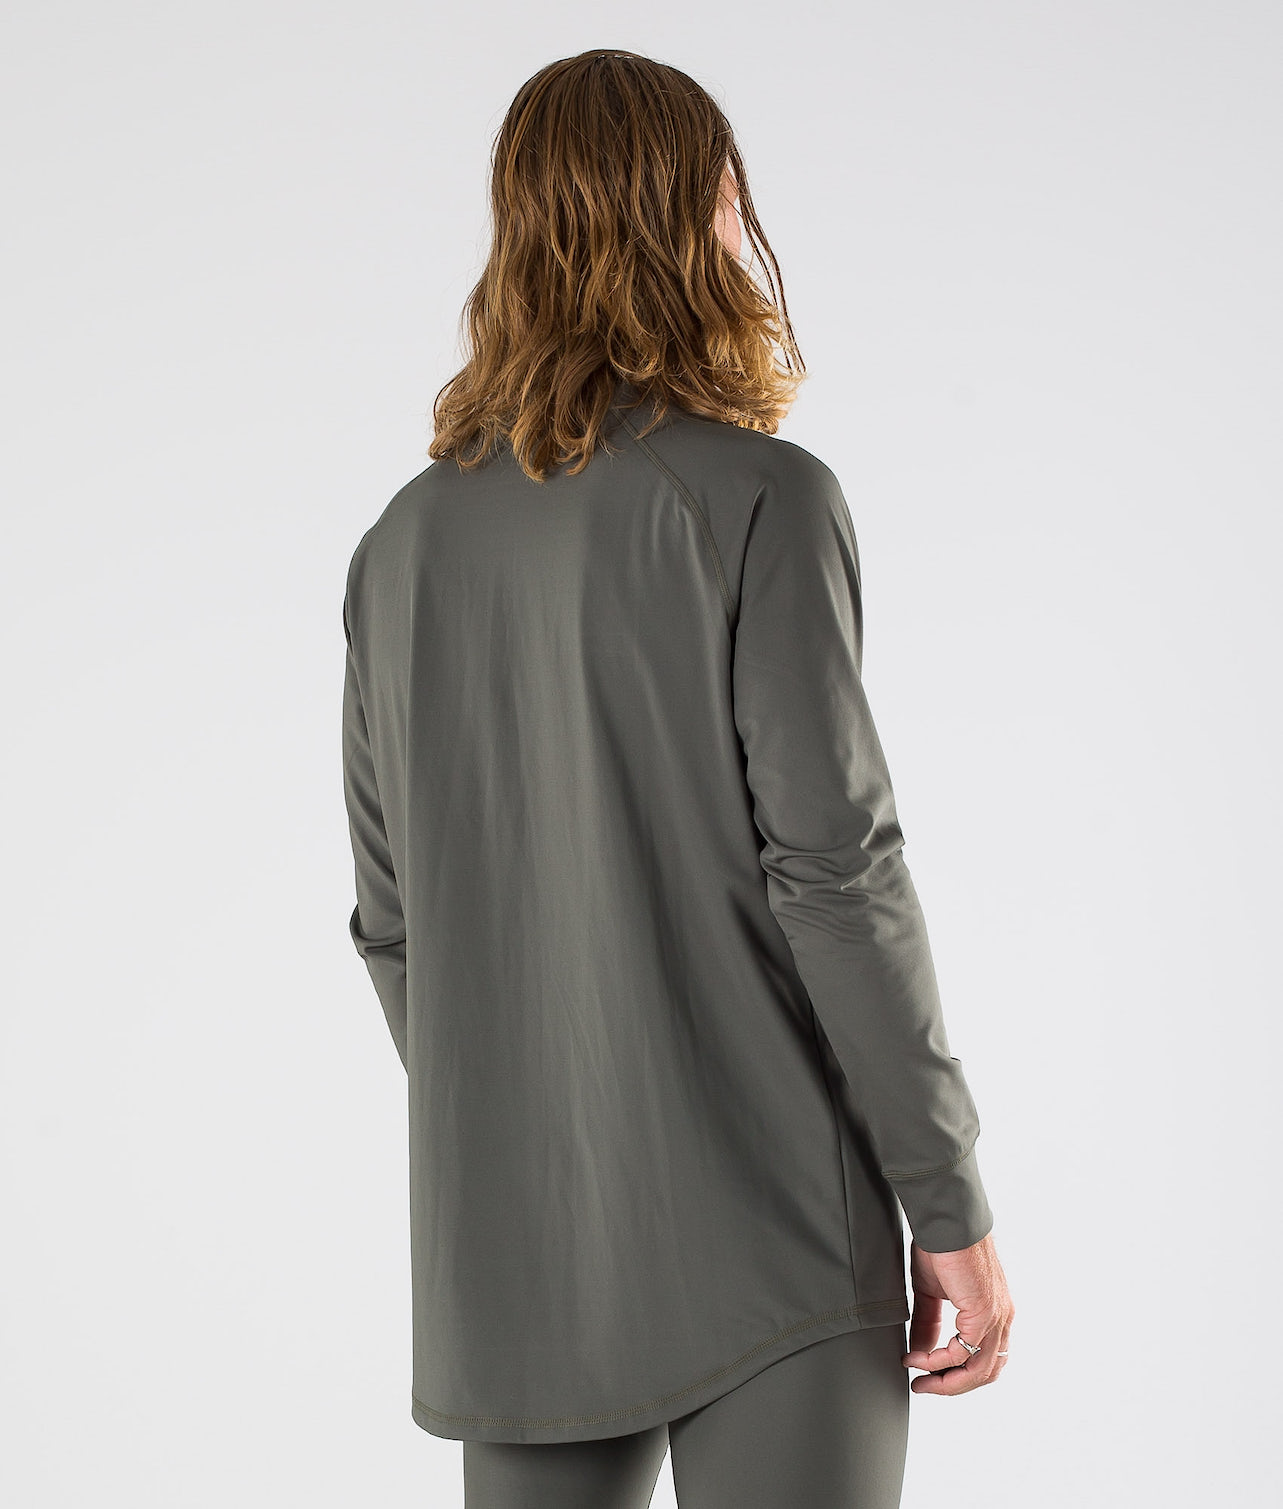 Buy Snuggle 2X-UP Base Layer Top from Dope at Ridestore.com - Always free shipping, free returns and 30 days money back guarantee